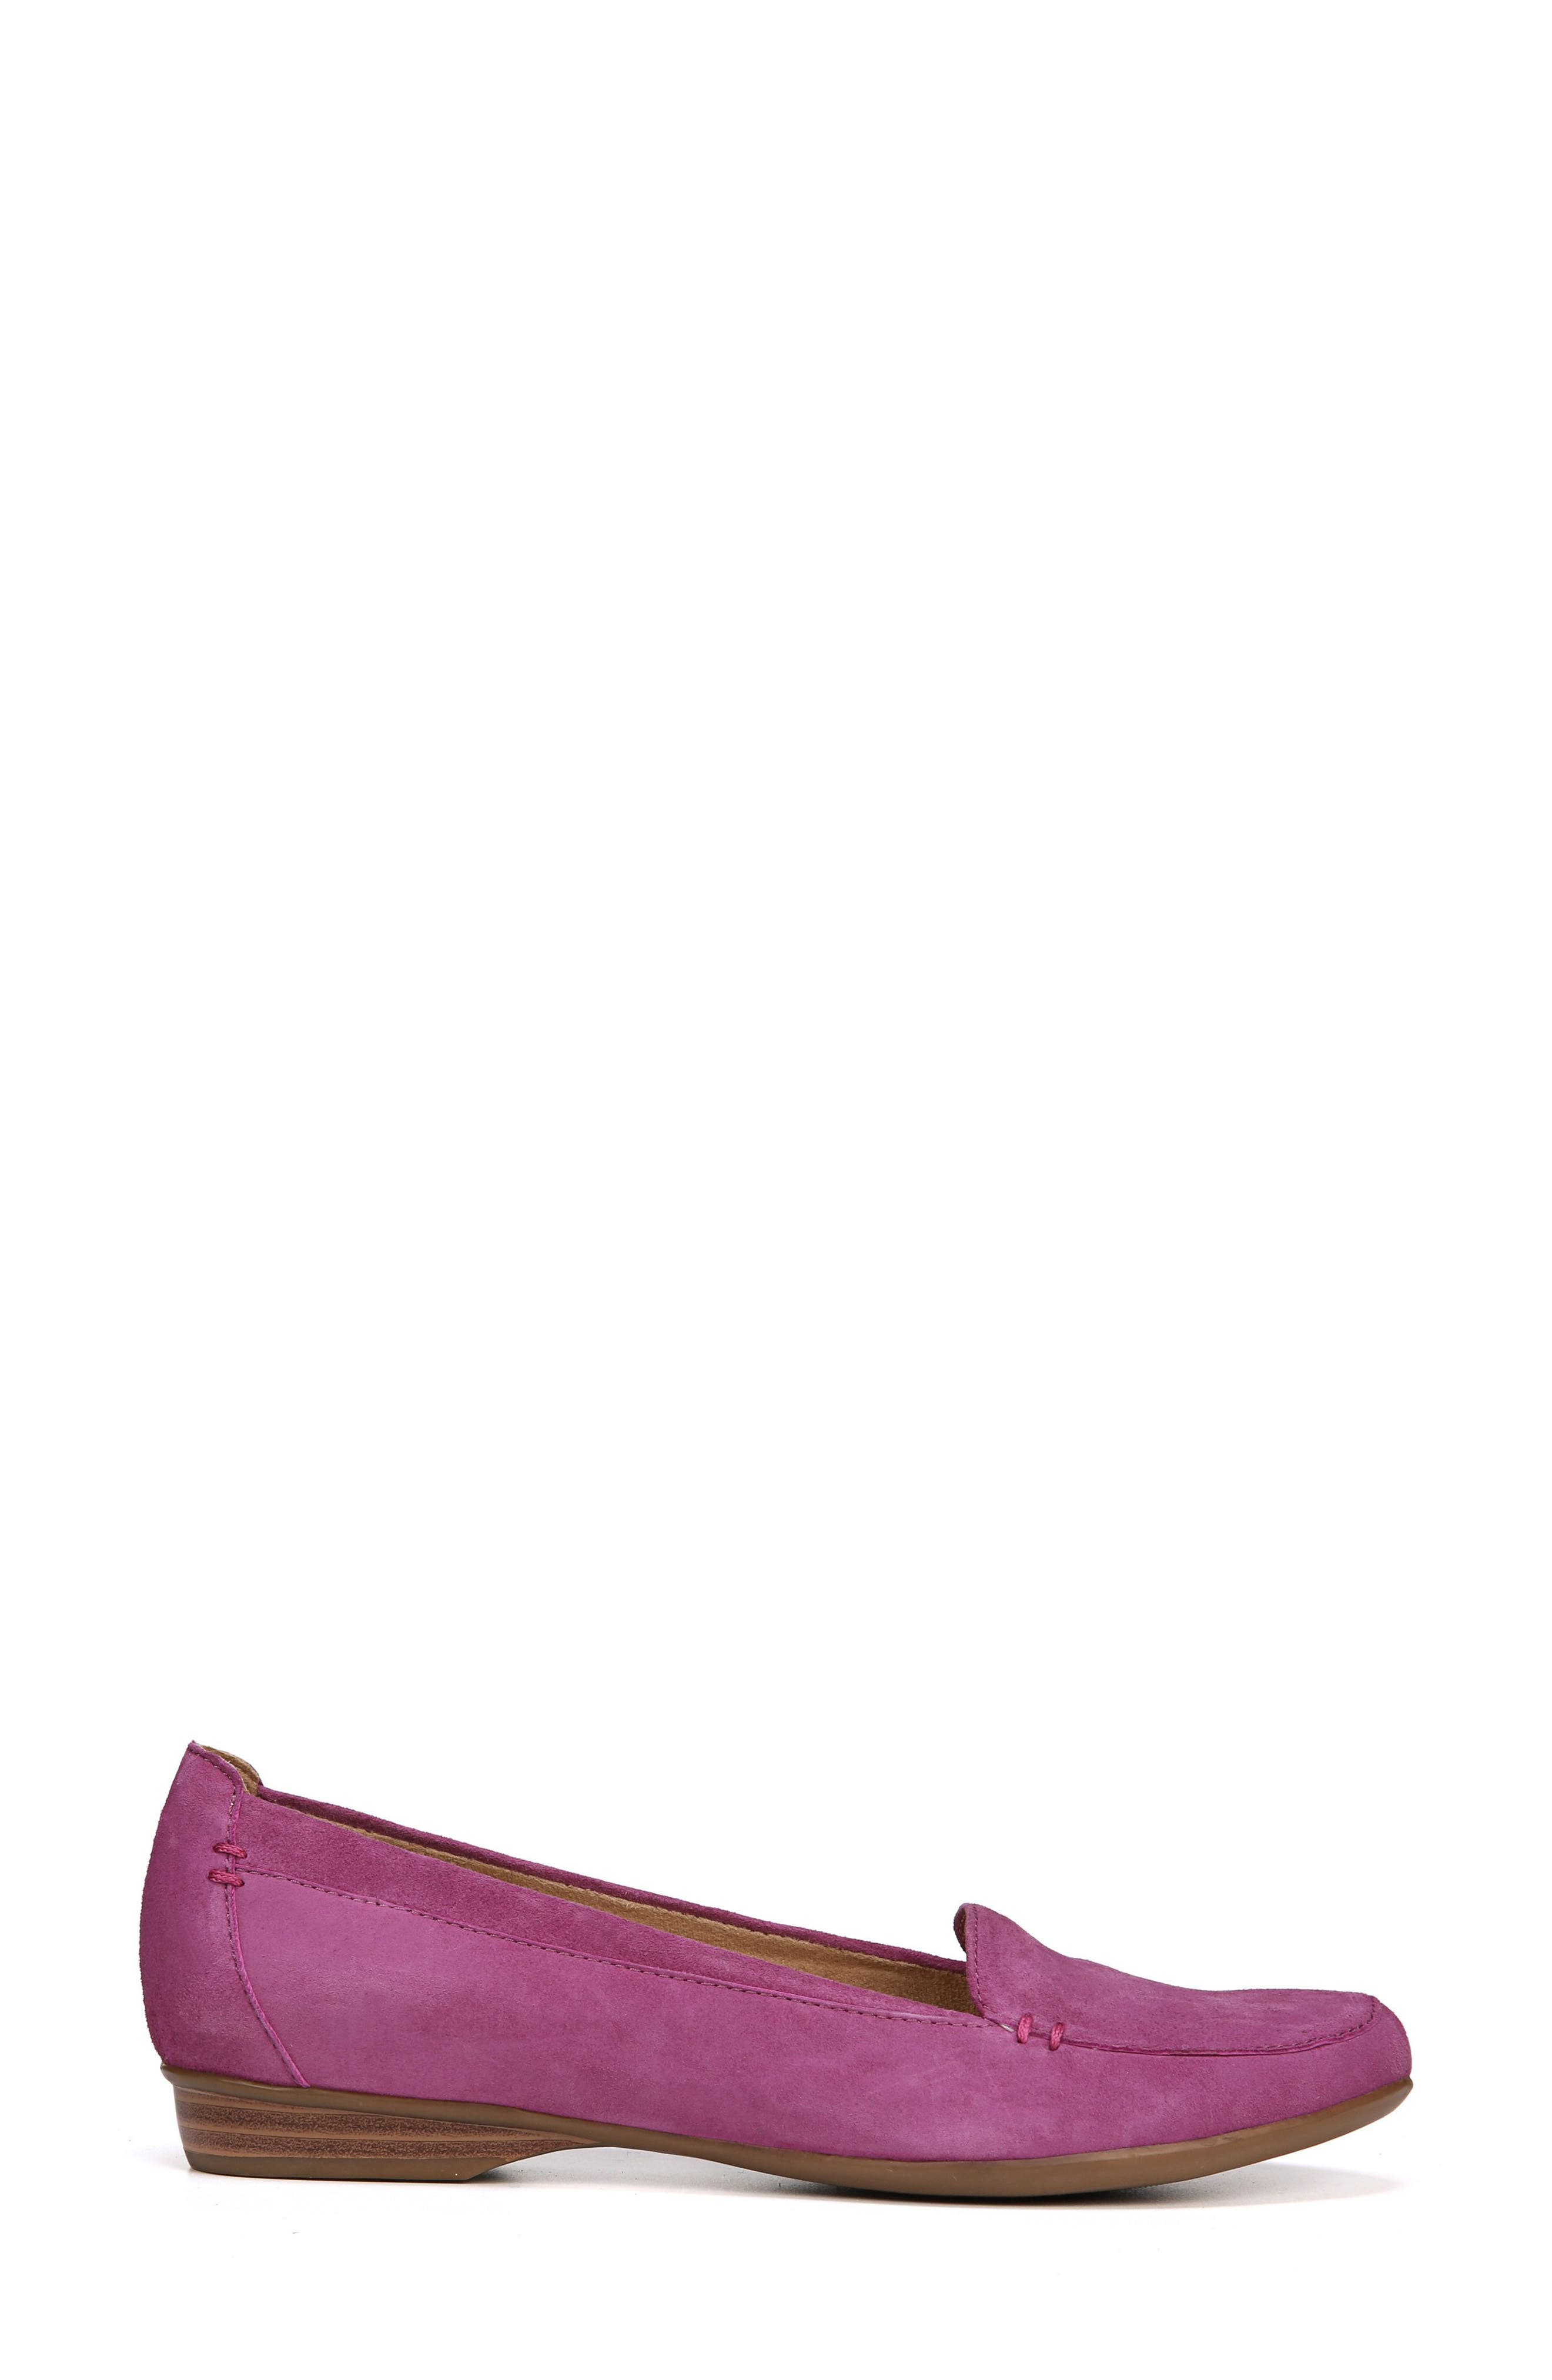 'Saban' Leather Loafer,                             Alternate thumbnail 3, color,                             Radiant Orchid Suede